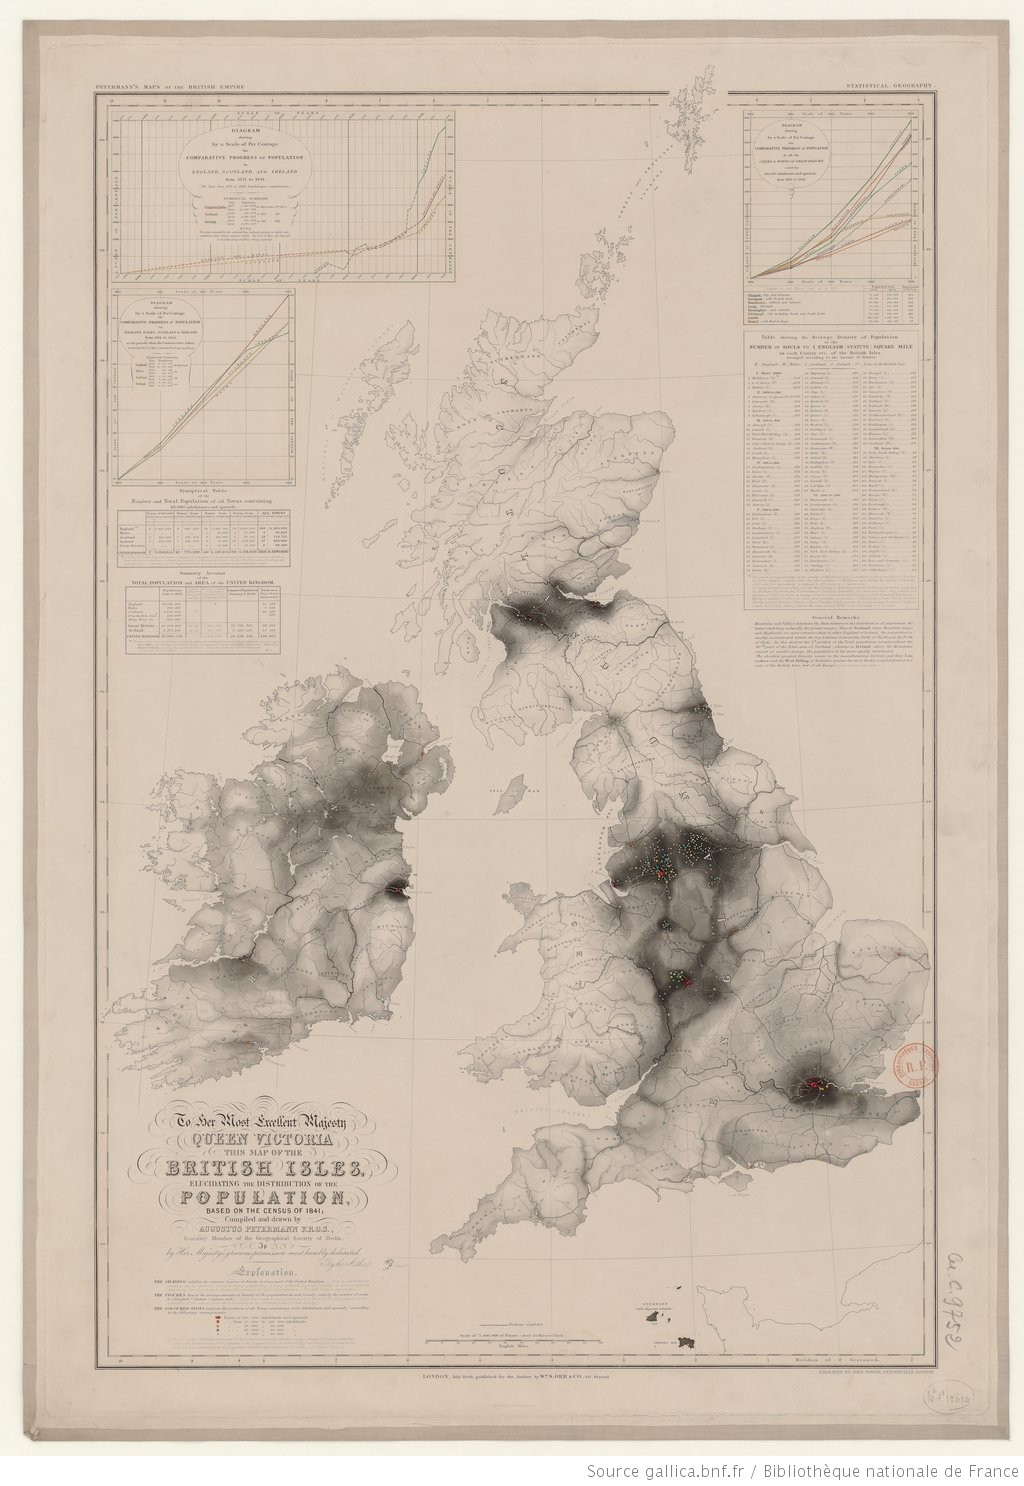 Petermanns Maps of the British Empire. Statistical Geography. To Her Most Excellent Majesty Queen Victoria, This Map of the British Isles elucidating the Distribution of the Population based of the Census of 1841 / compiled and drawn by Augustus Petermann, .. . is... dedicated By The Author